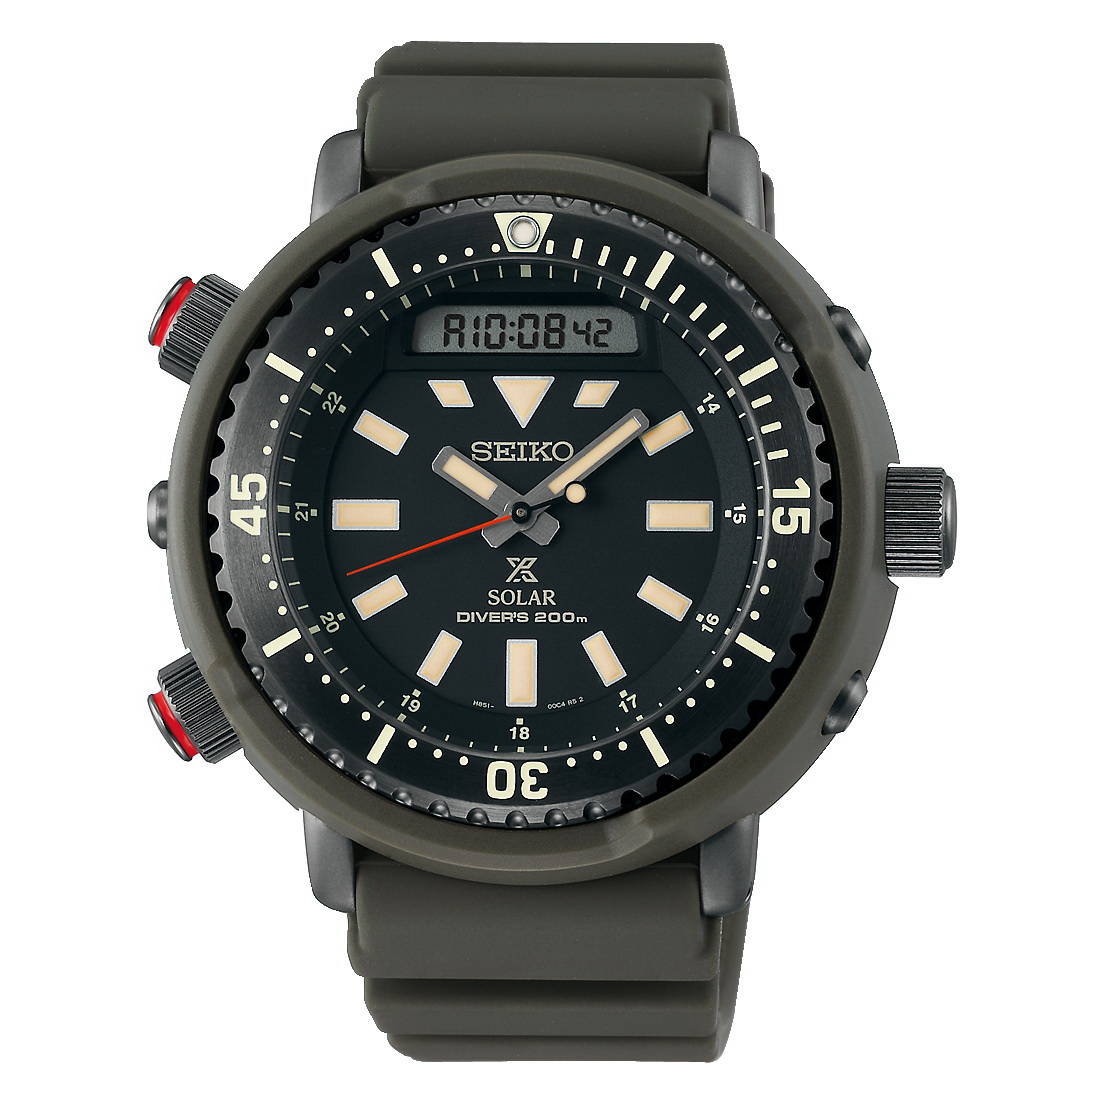 Seiko's new Prospex Urban Safari Capsule Collection SEIKO+Prospex+Diver%27s+URBAN+SAFARI+Capsule+COLLECTION+07